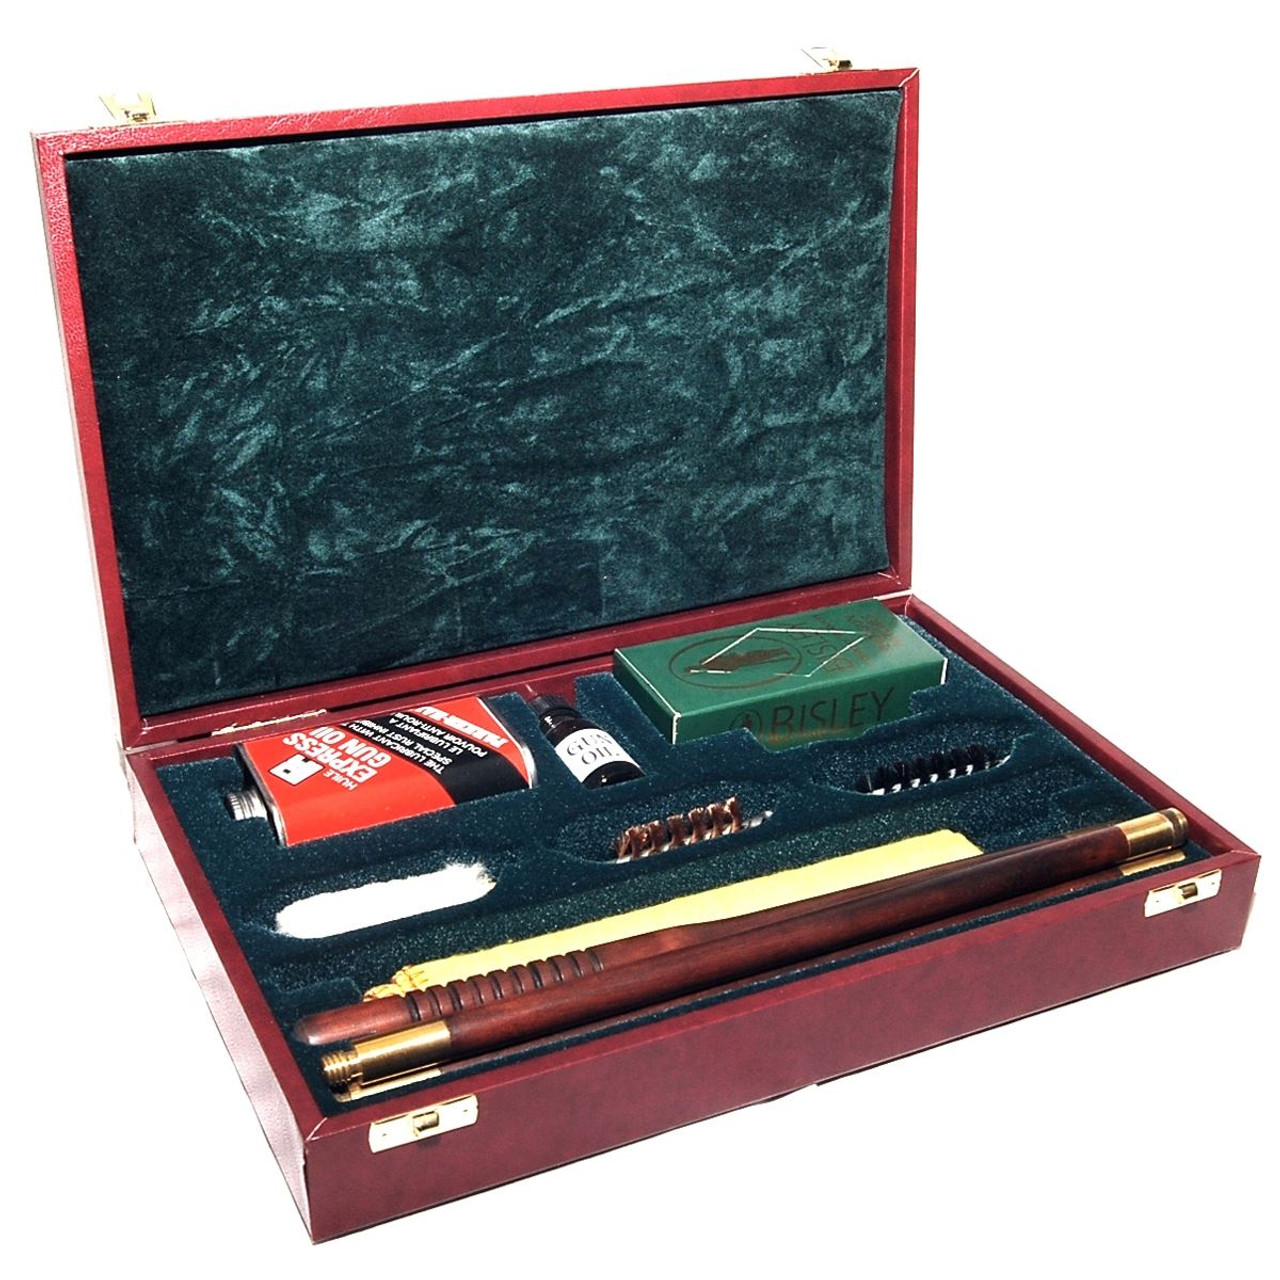 Parker Hale Sandringham Shotgun Cleaning Kit